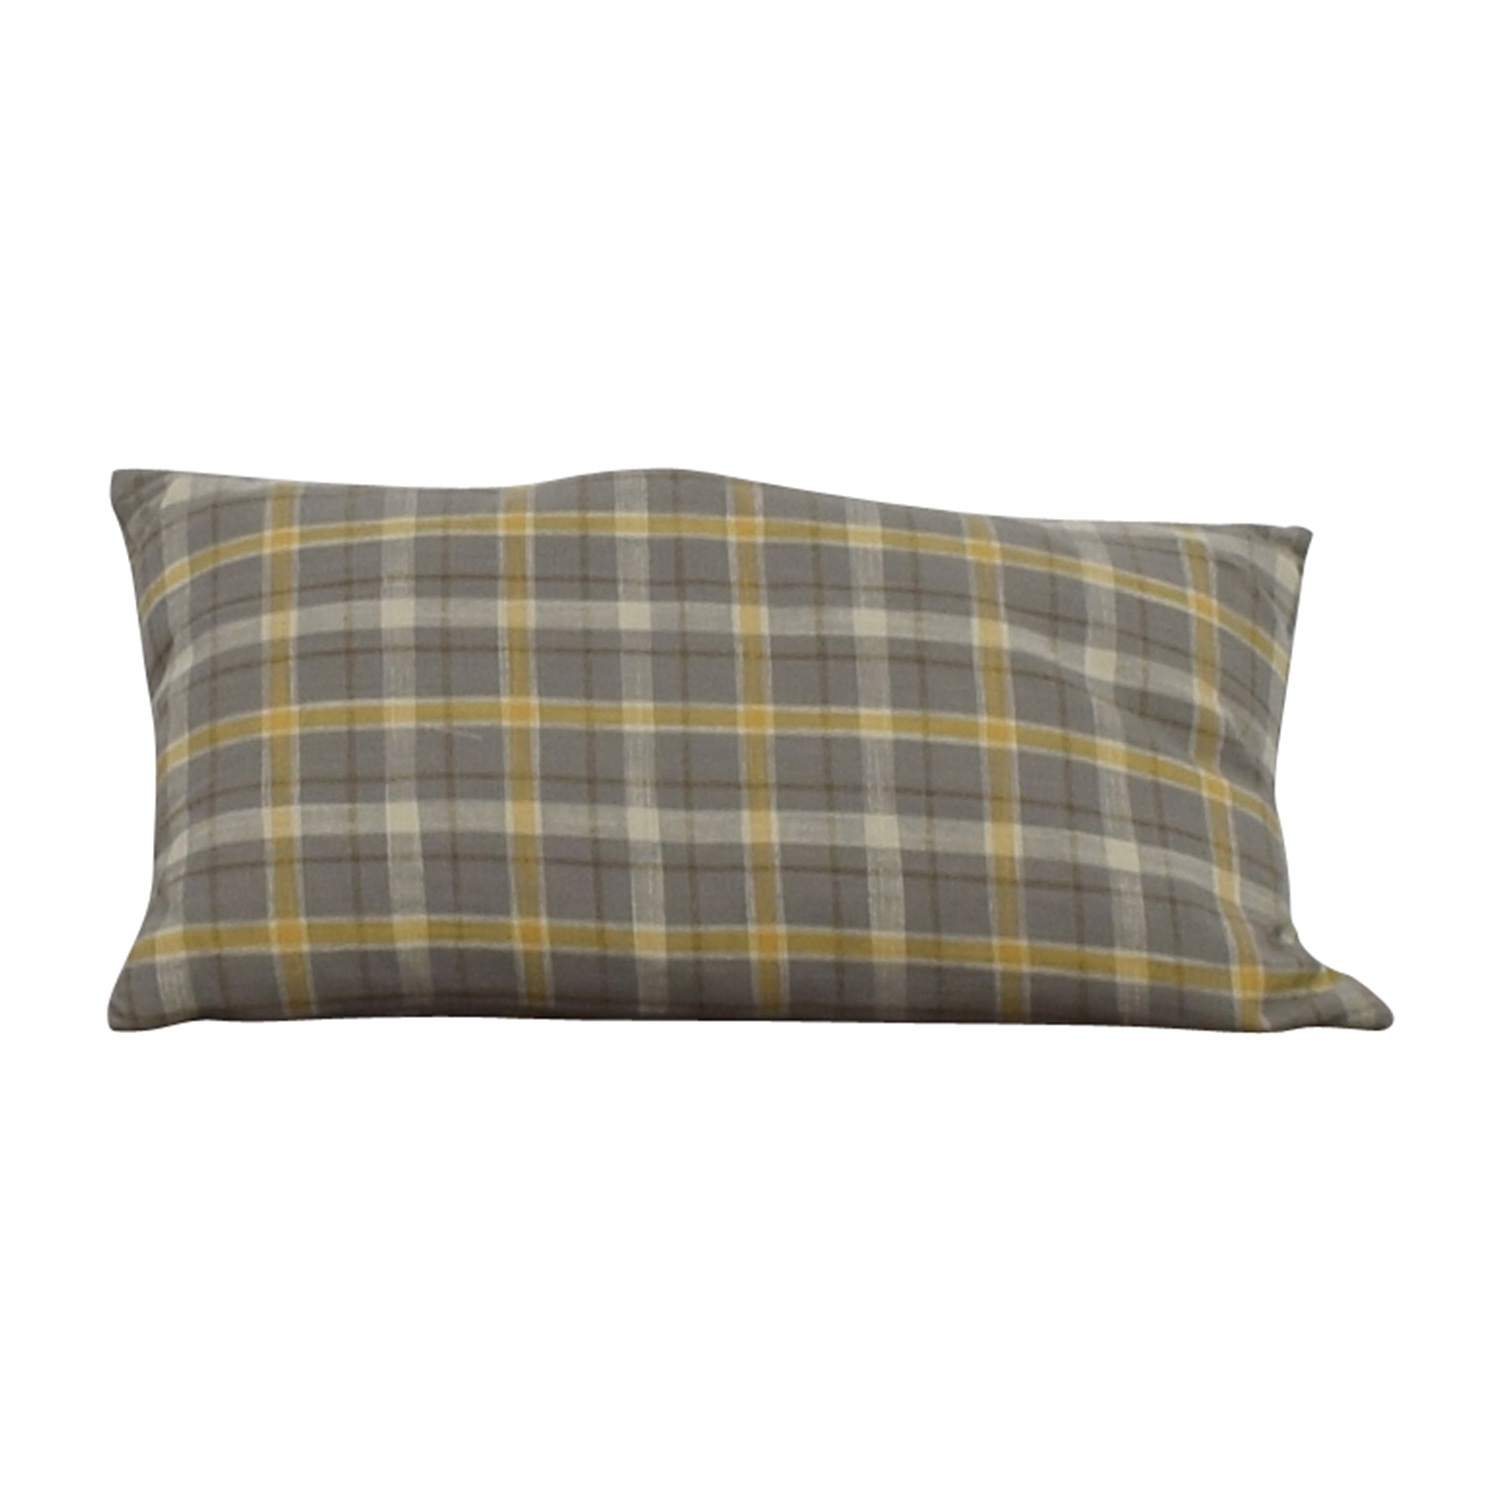 Plaid Roll Cushion Decorative Accents